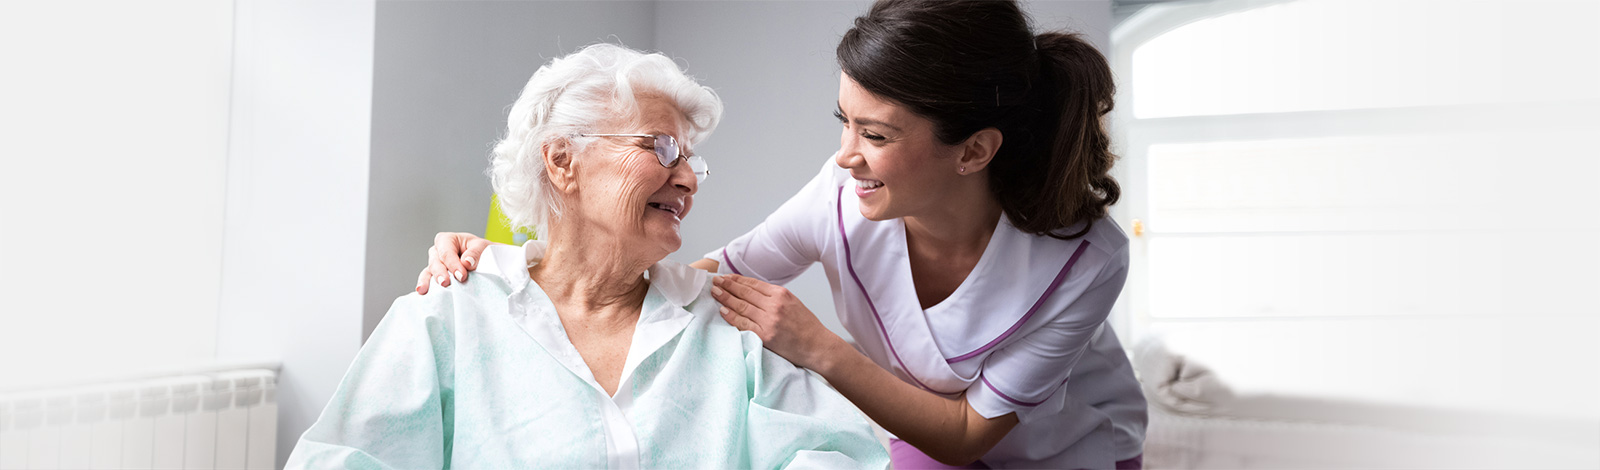 A nurse looking at a resident and both are smiling.